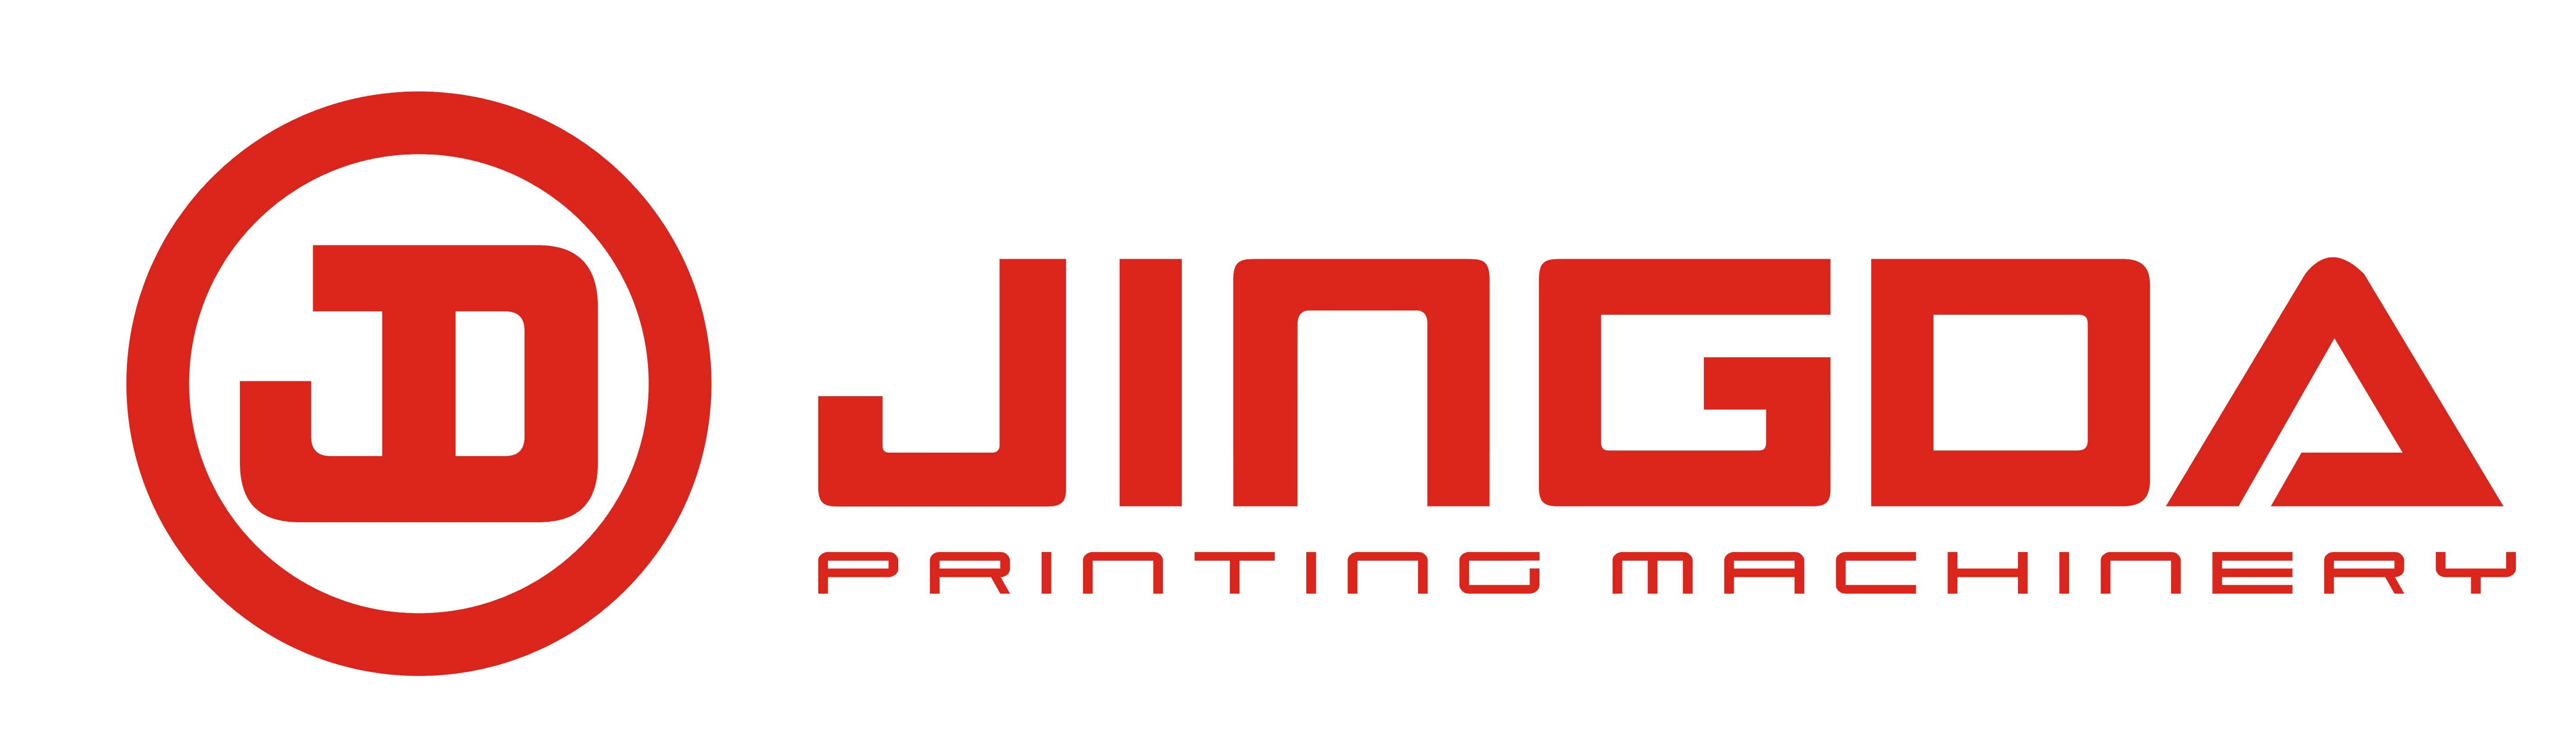 Ruian Jingda Printing Machinery Co., Ltd. logo